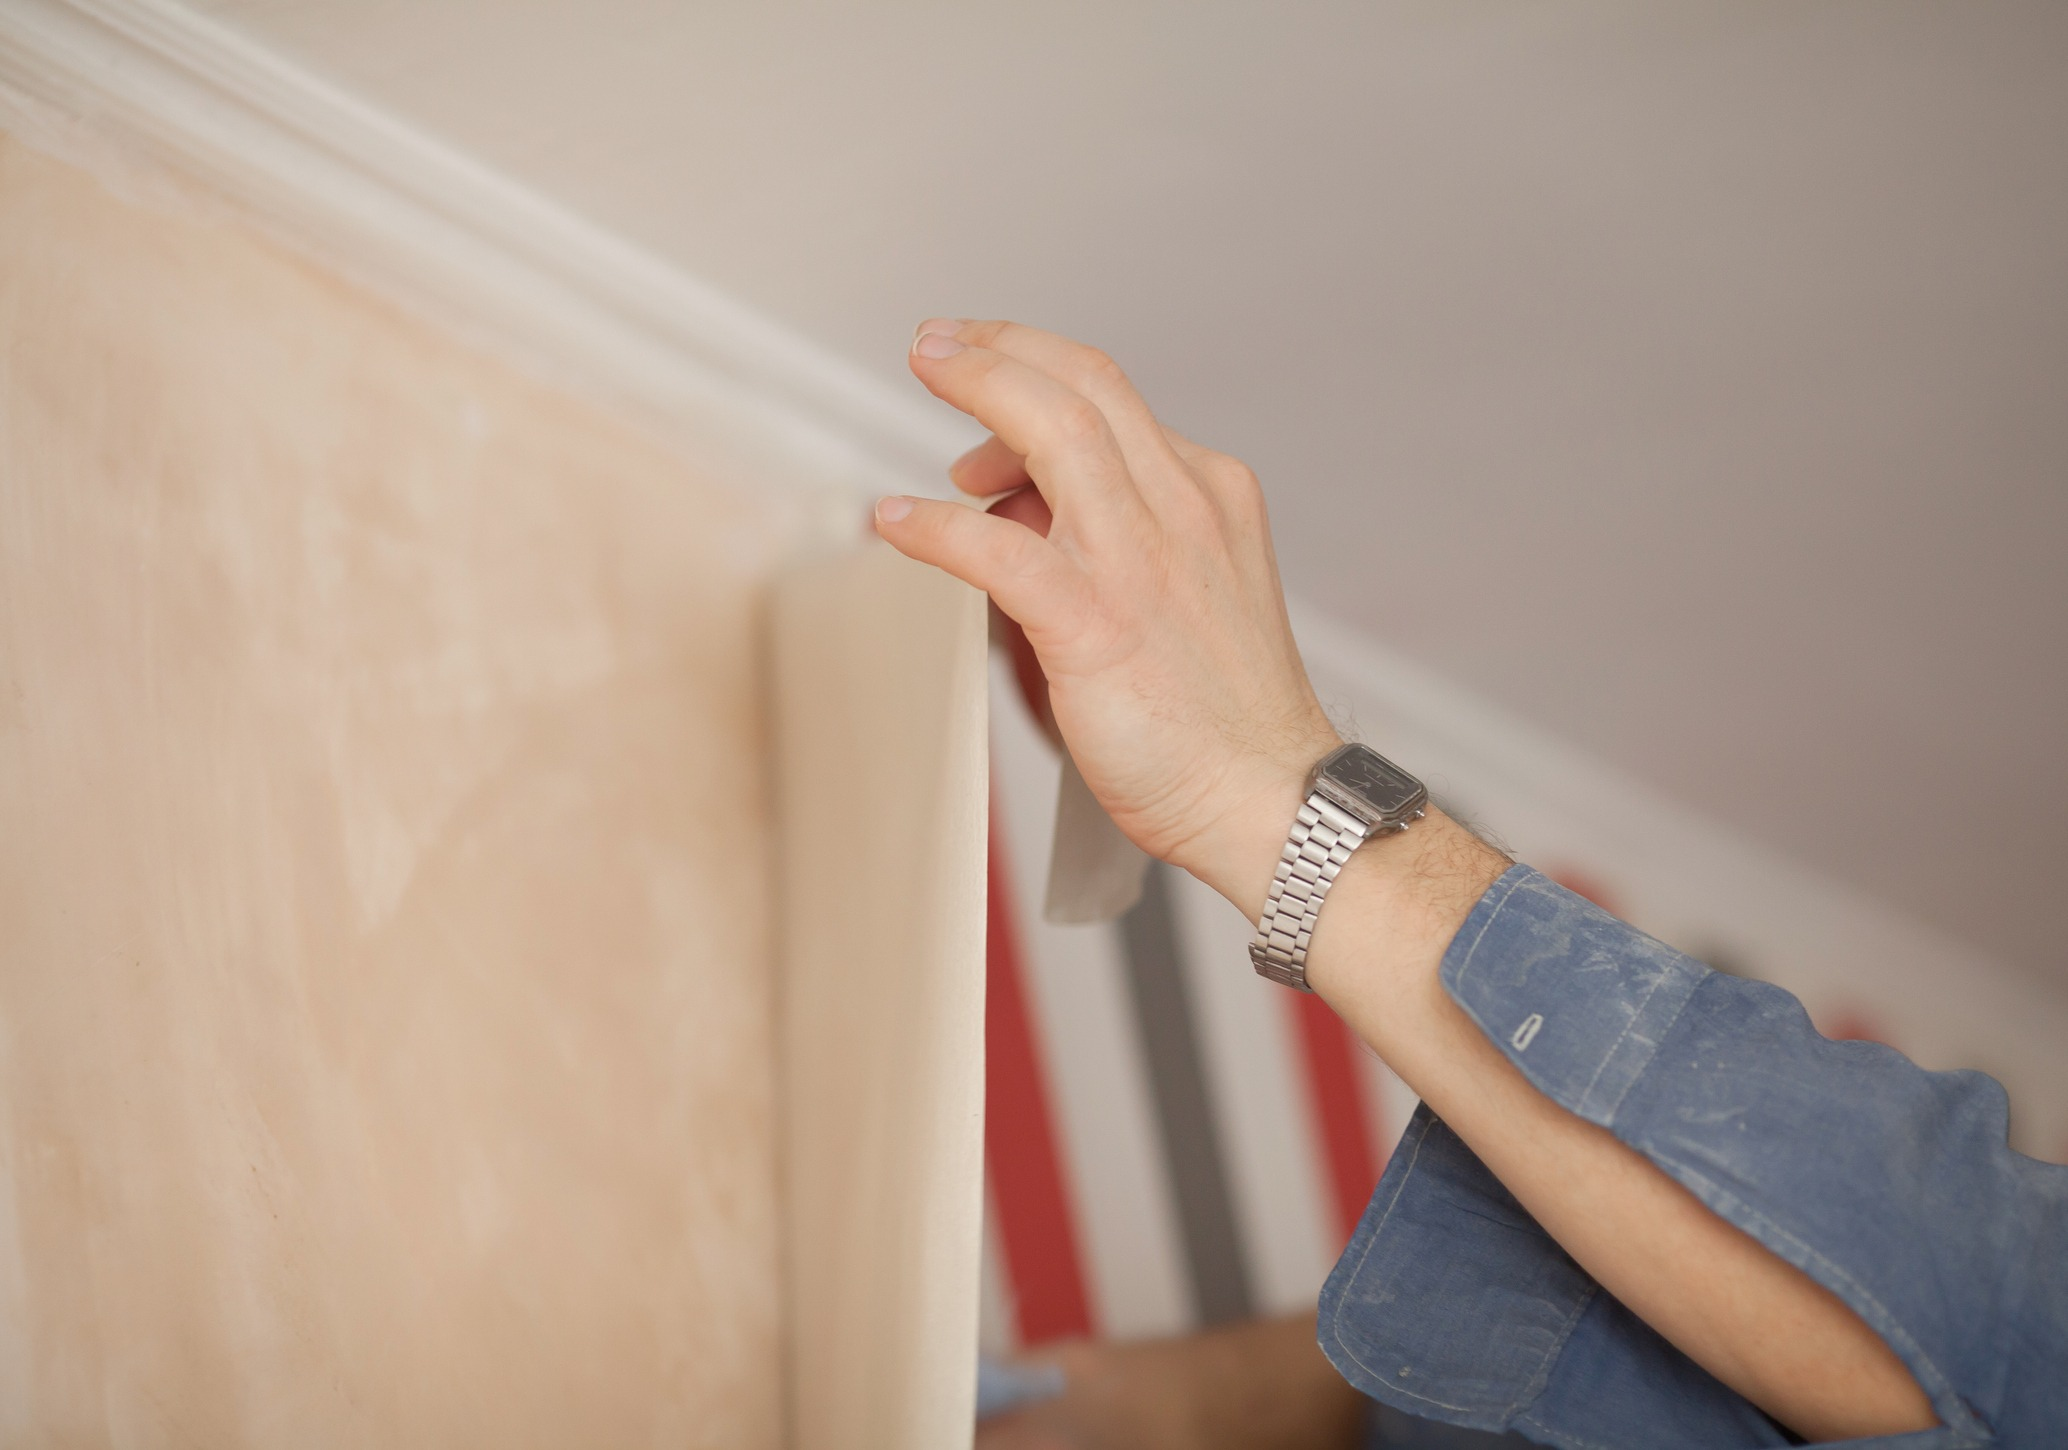 Glueing wallpapers at home. Handyman putting up wallpaper on the wall